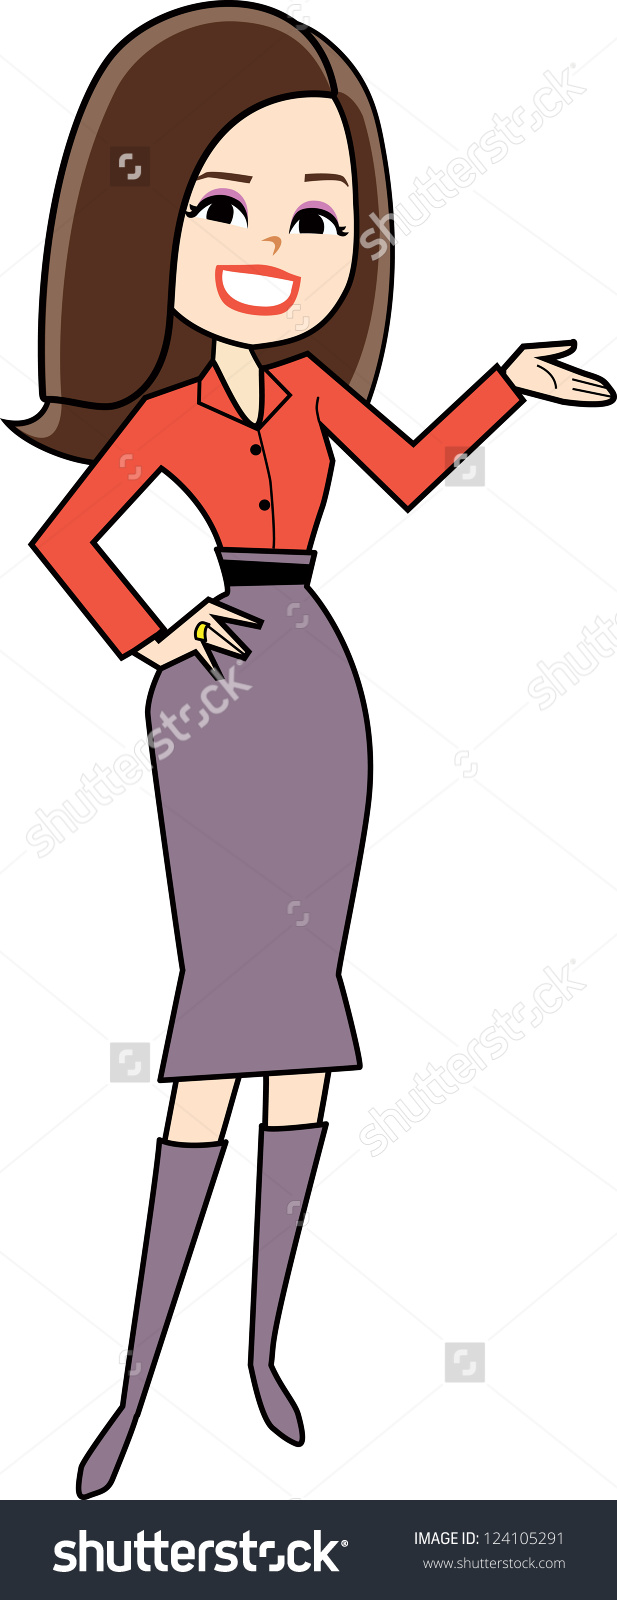 Cartoon Woman clip-art in retro style drawing presenting